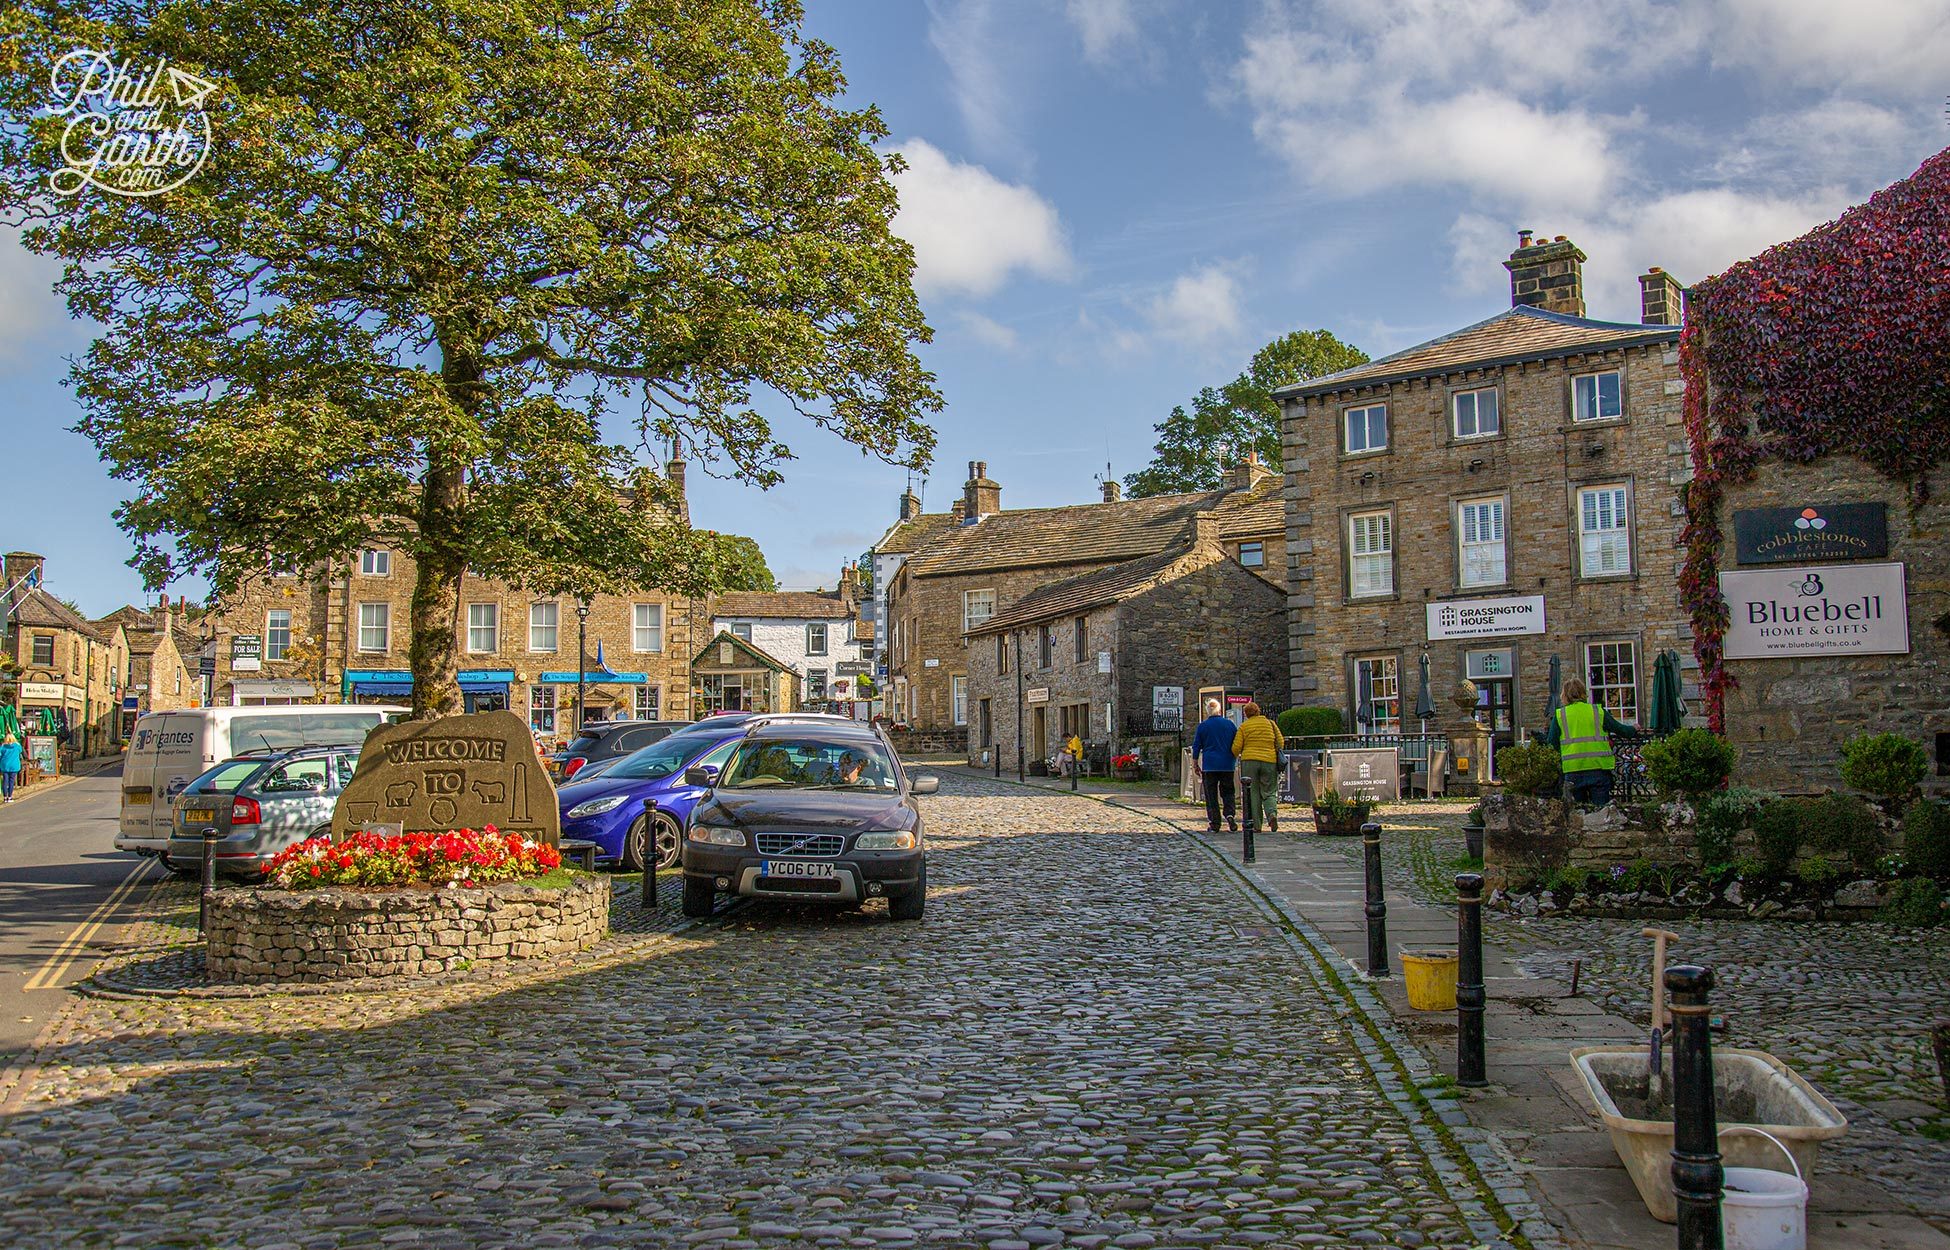 The arty village of Grassington - The prettiest of the Yorkshire Dales villages